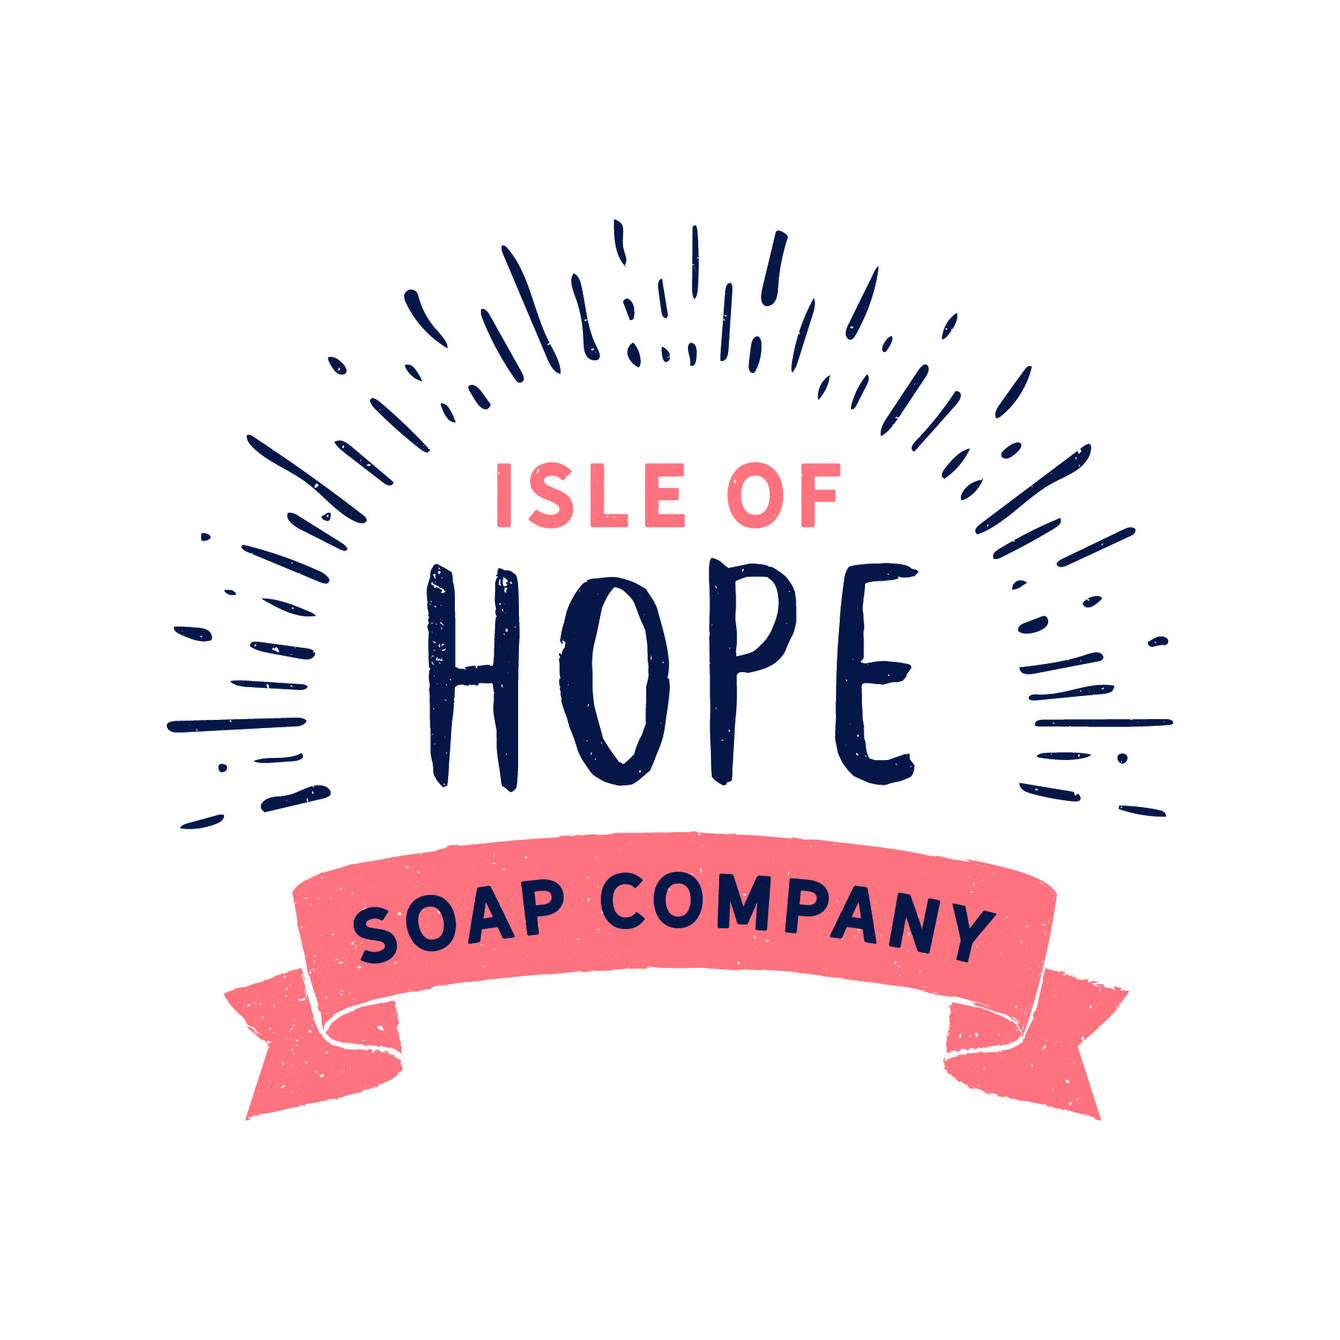 Isle of Hope Soap Company, LLC